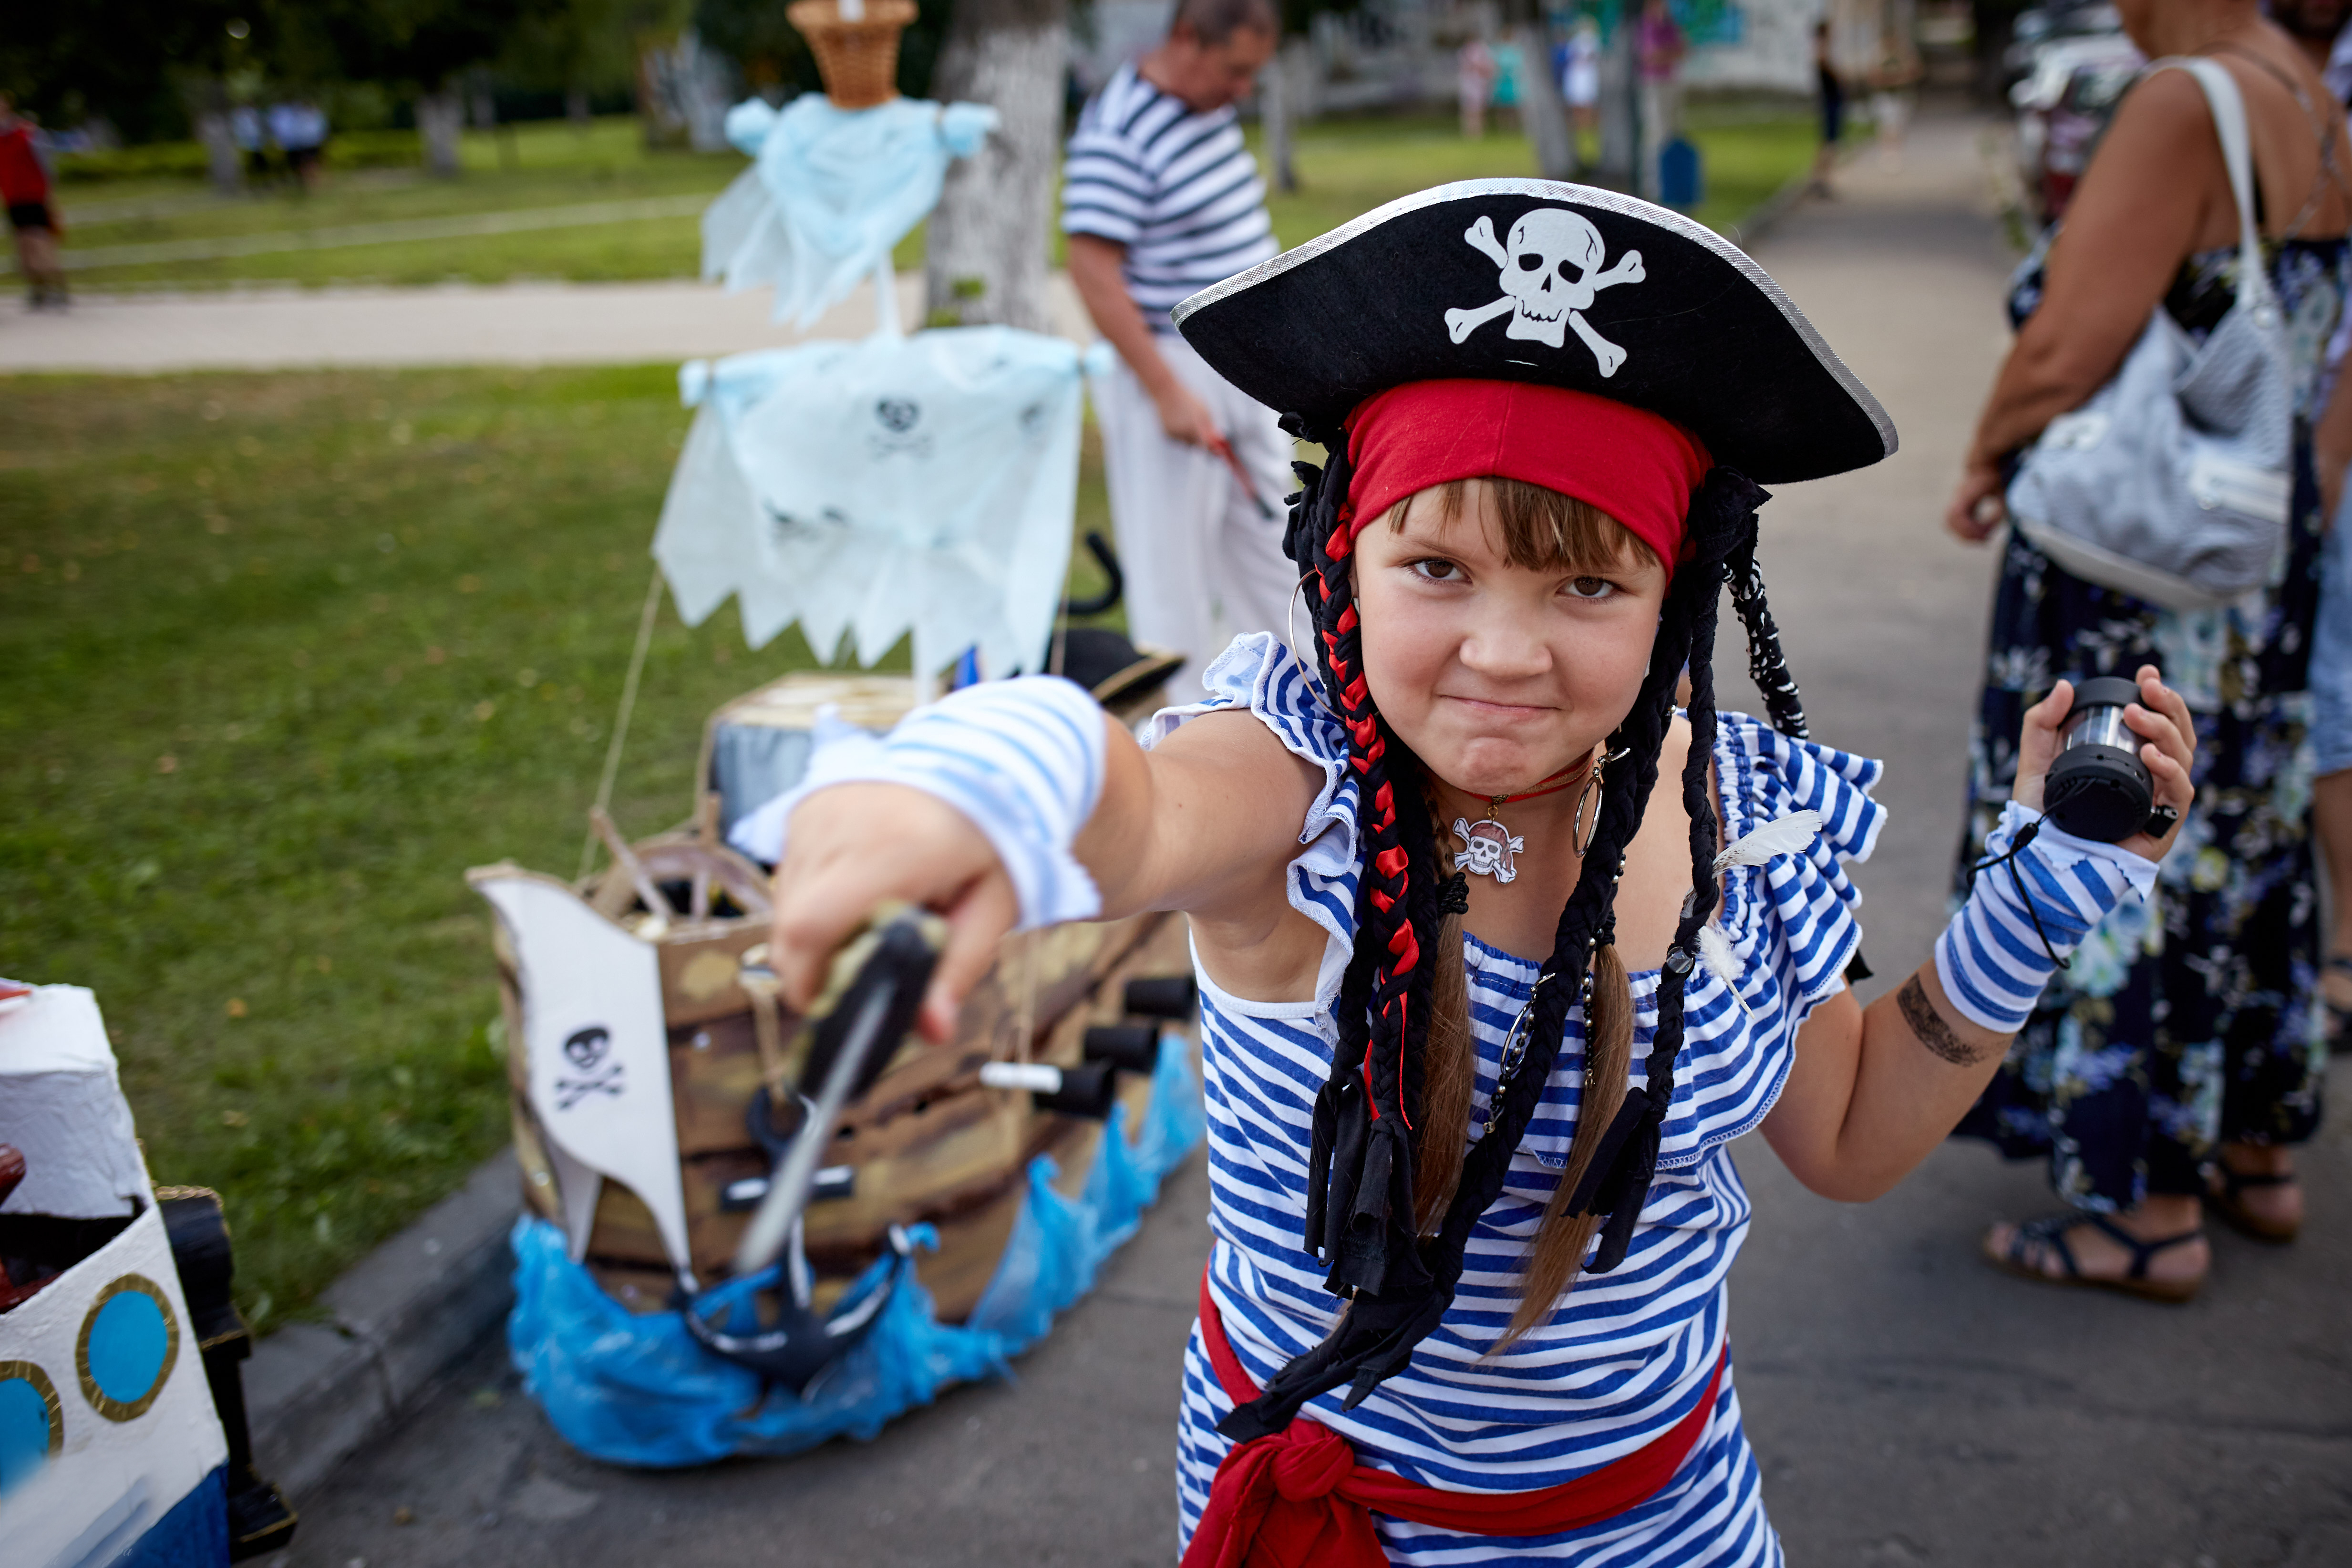 A child dressed as a pirate